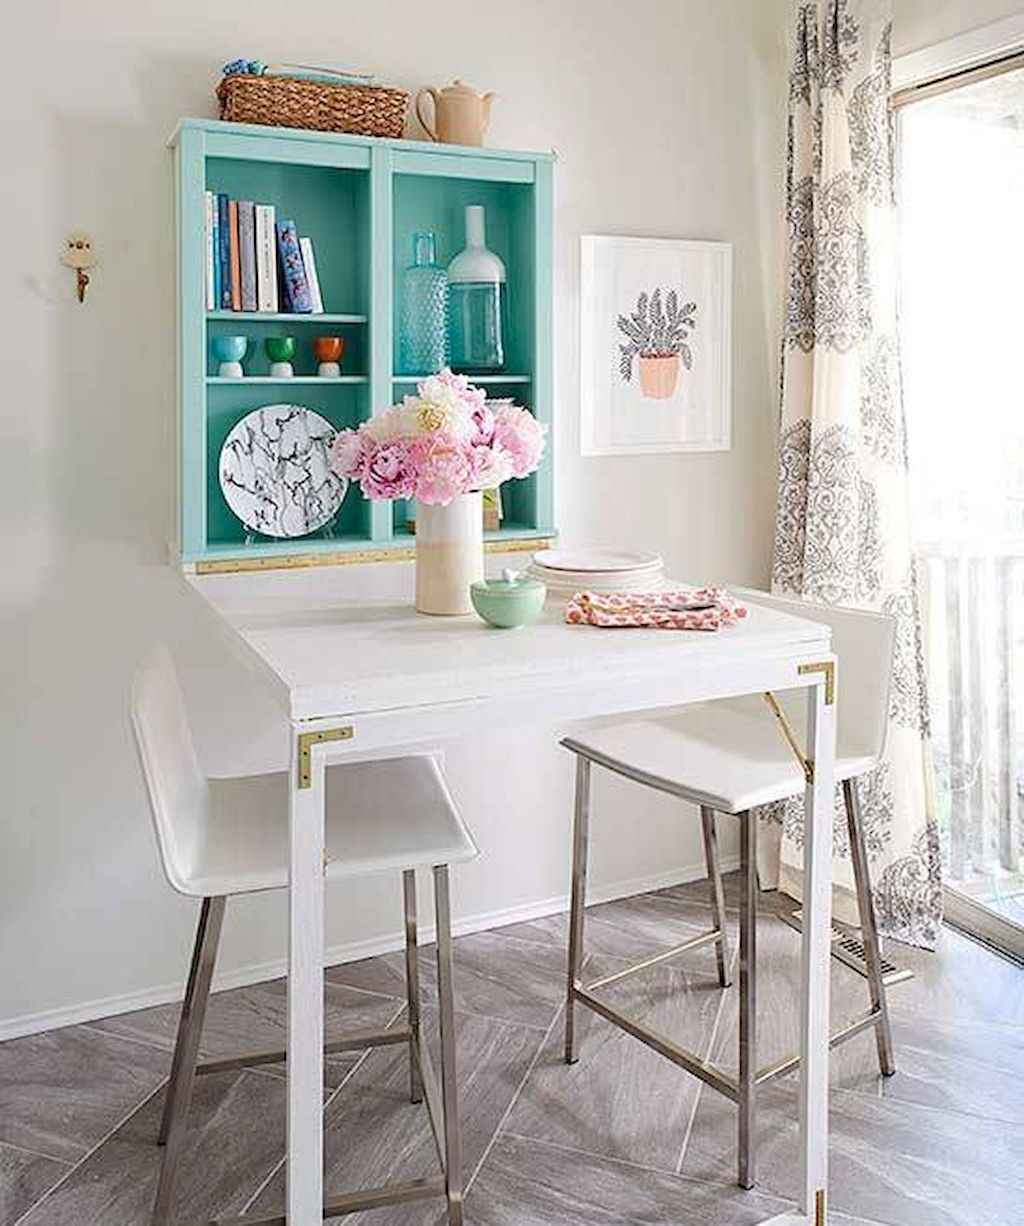 Couples first apartment decorating ideas (25)